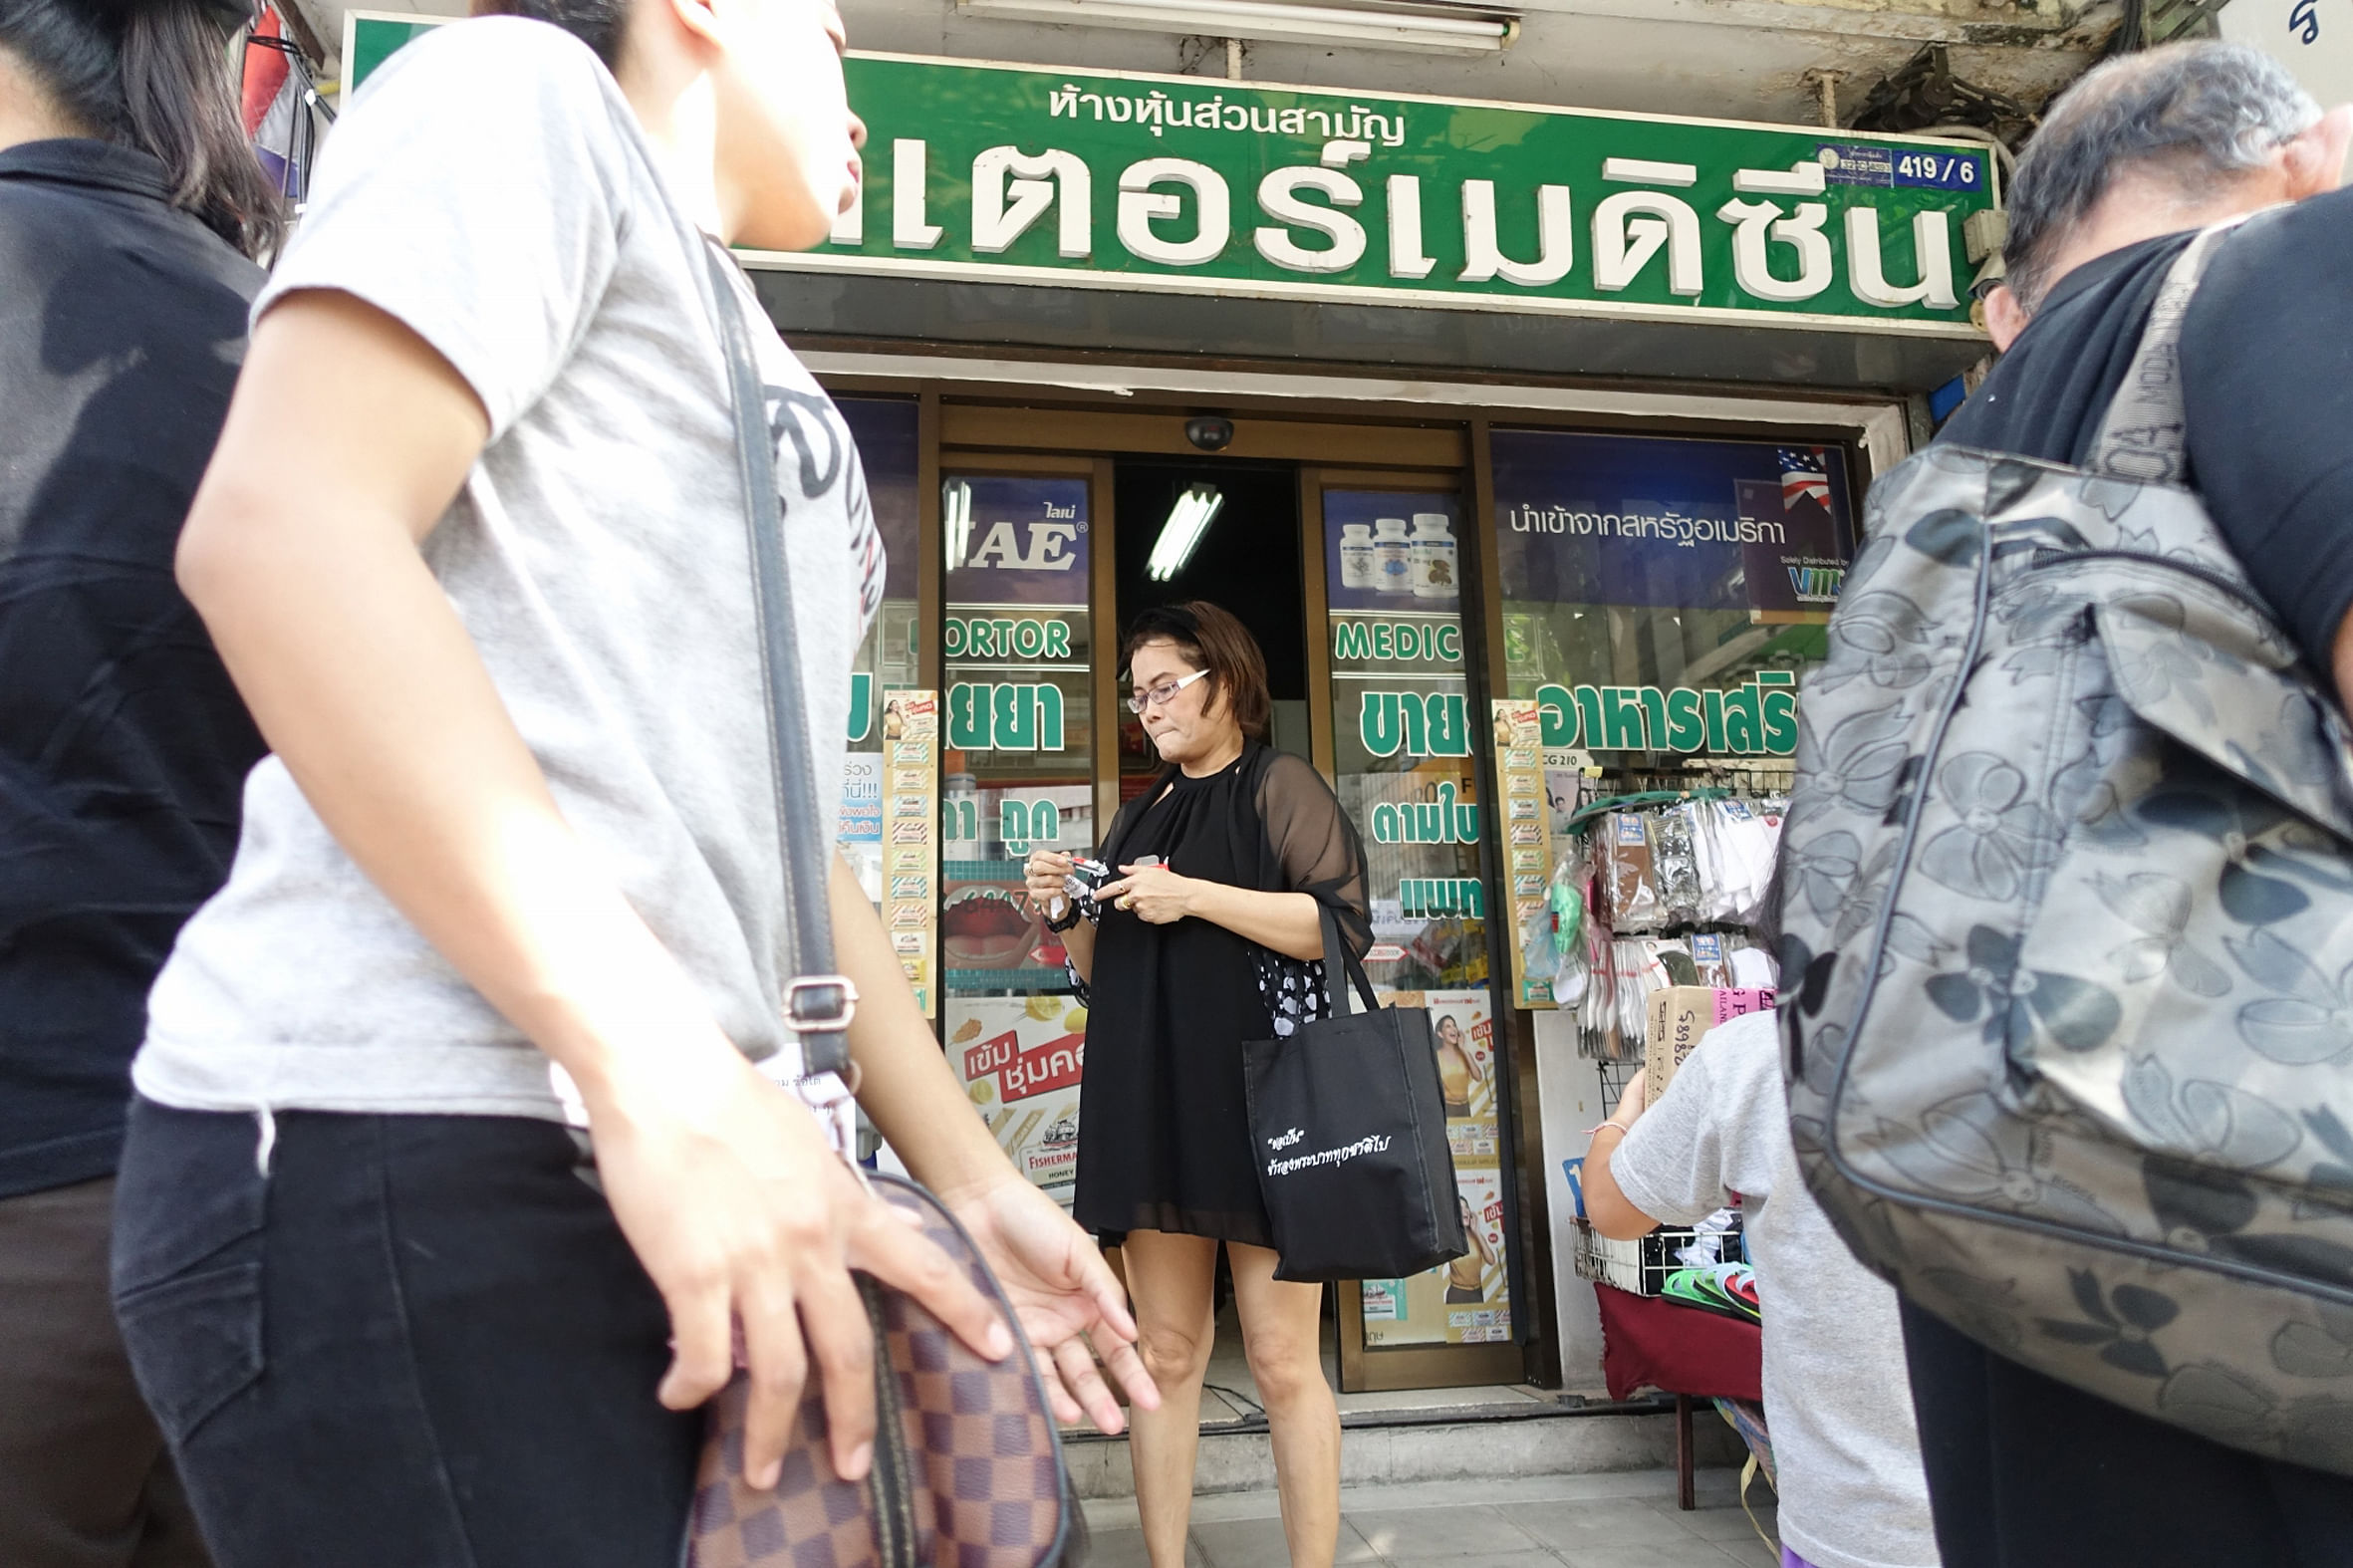 Antibiotic abuse killing thousands in Thailand, Opinion News